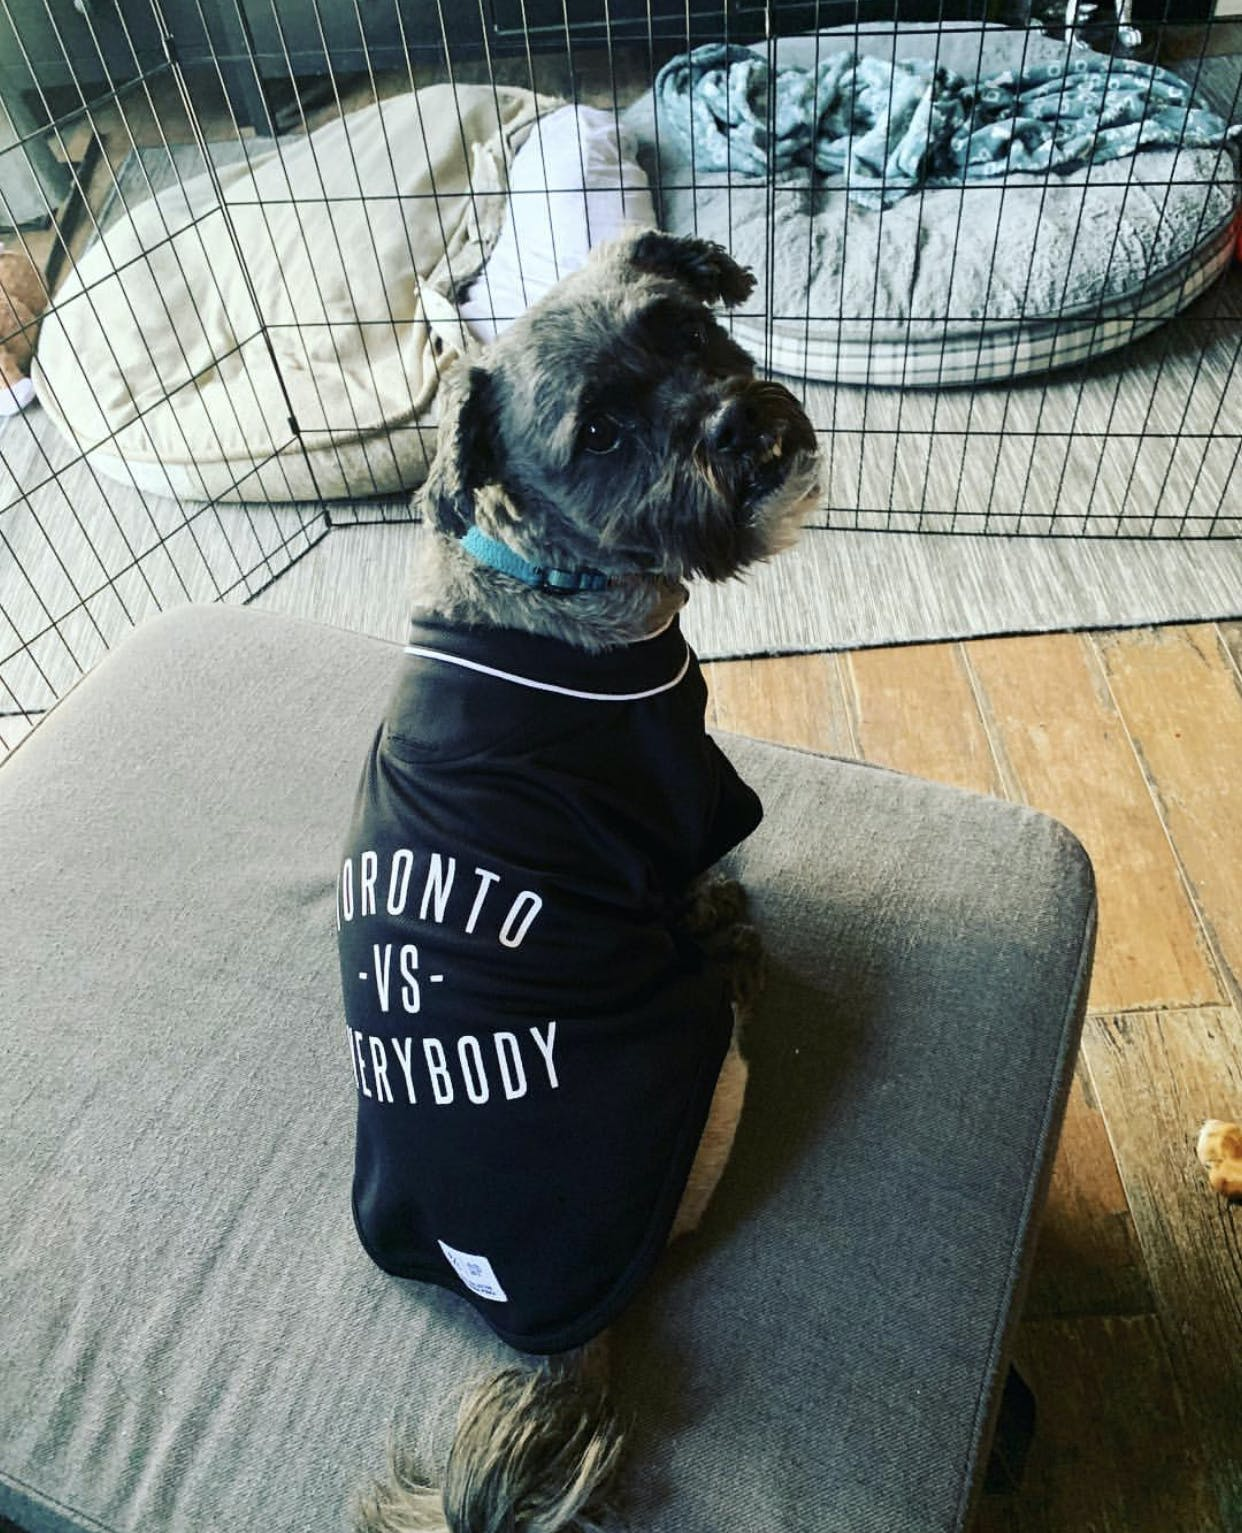 ee864aec0 P C x Canada Pooch Toronto -vs- Everybody® Button Up Jersey